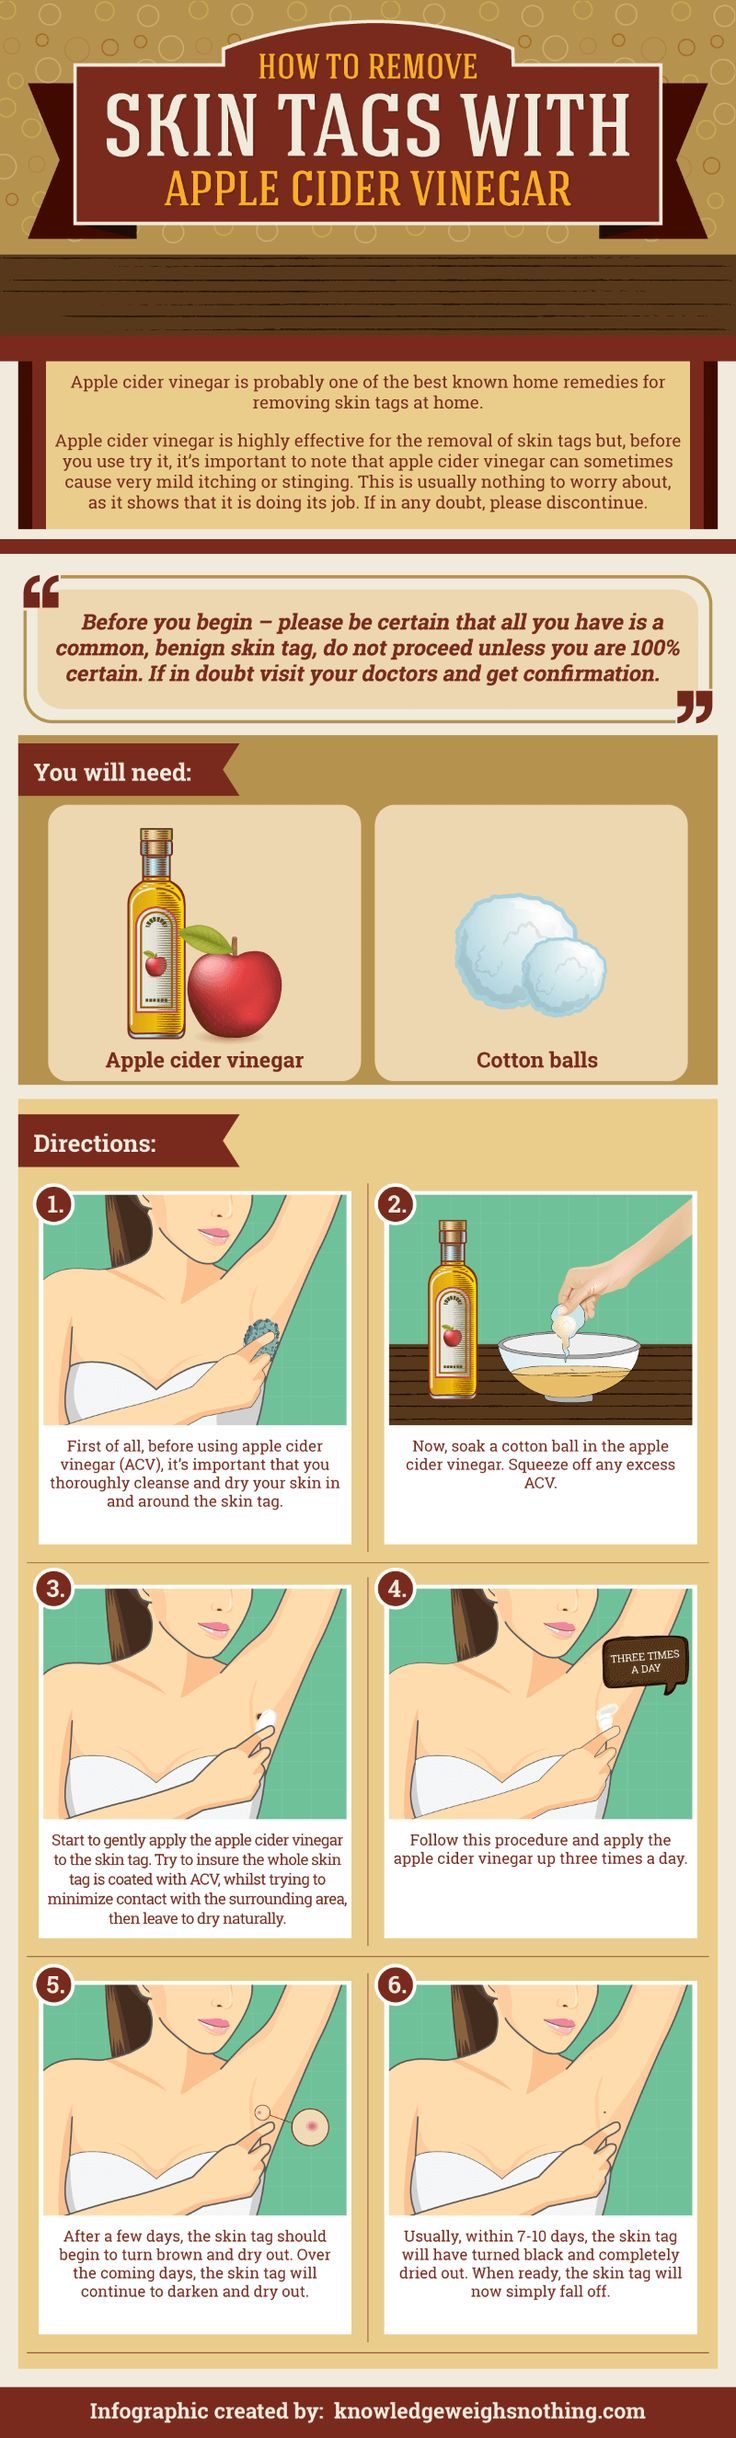 How To Remove Skin Tags At Home With ACV. See the following post for 10 additional skin tag home remedies: https://knowledgeweighsnothing.com/how-to-remove-skin-tags-with-apple-cider-vinegar/